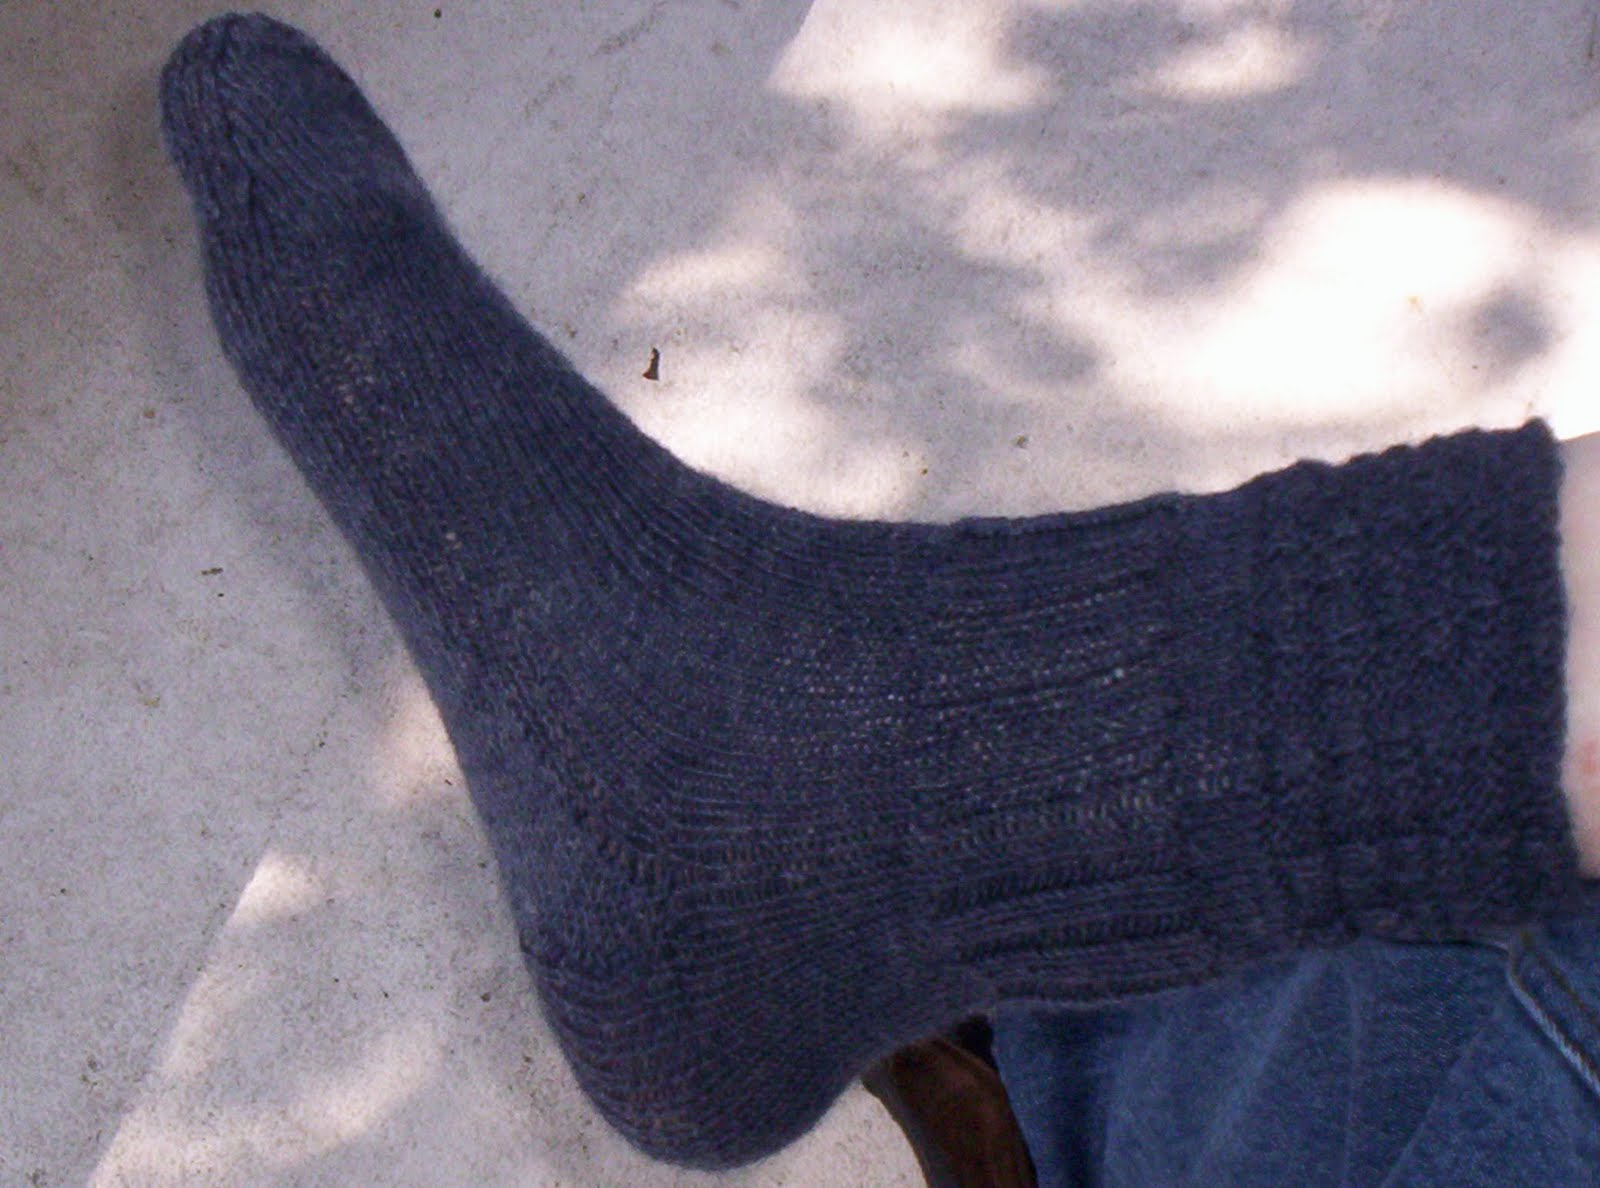 Busyknitting diabetic friendly free sock pattern updated 313 diabetic friendly free sock pattern updated 313 bankloansurffo Gallery